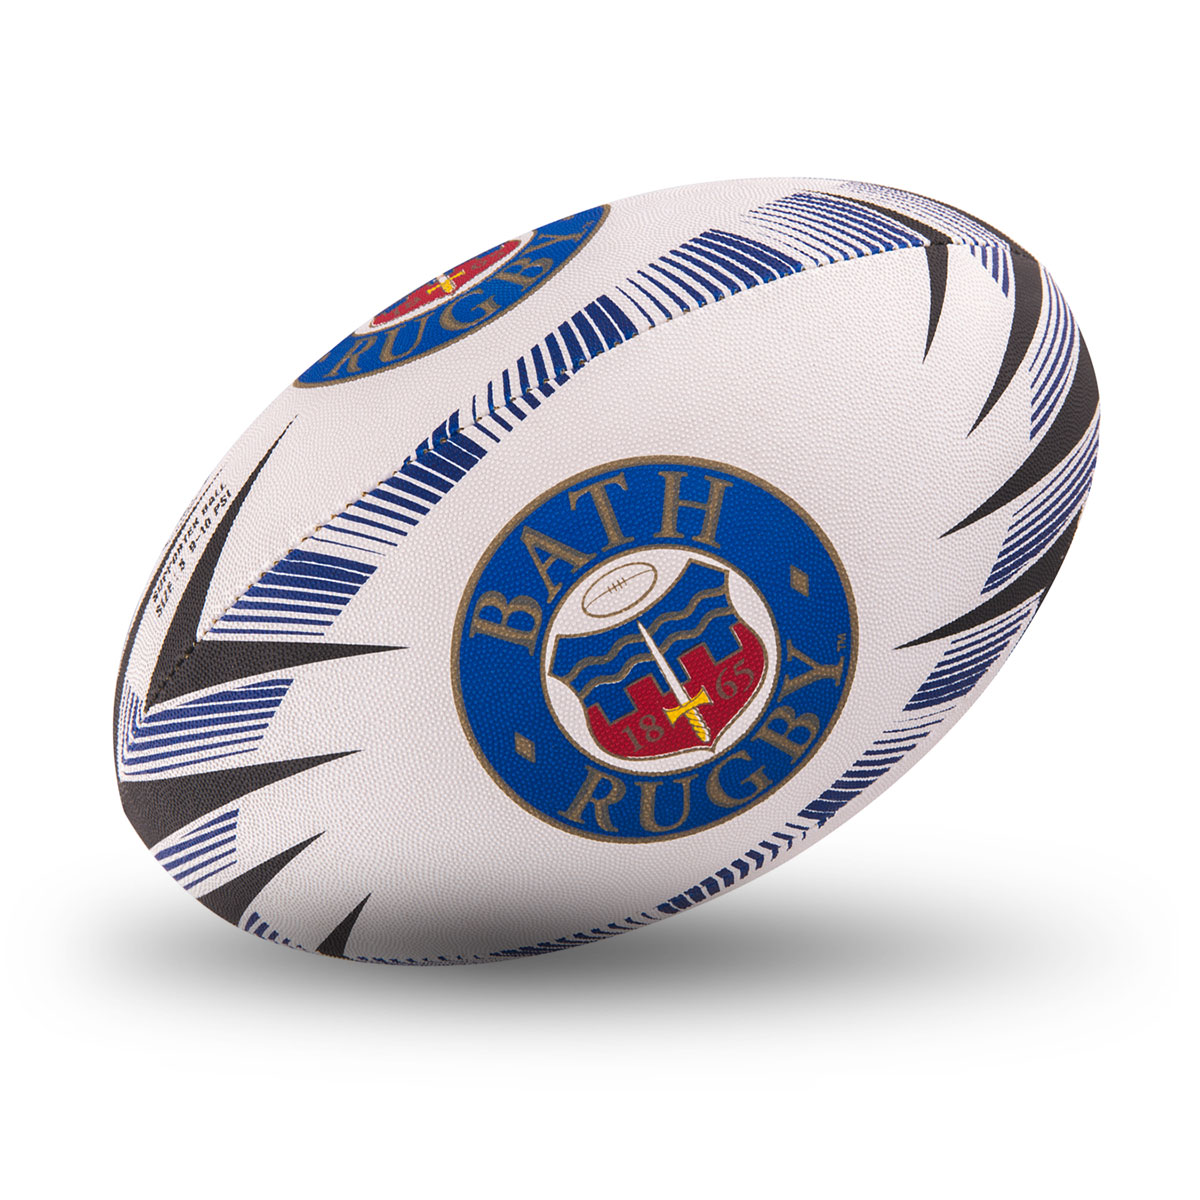 Gilbert Bath Supporters Rugby Ball